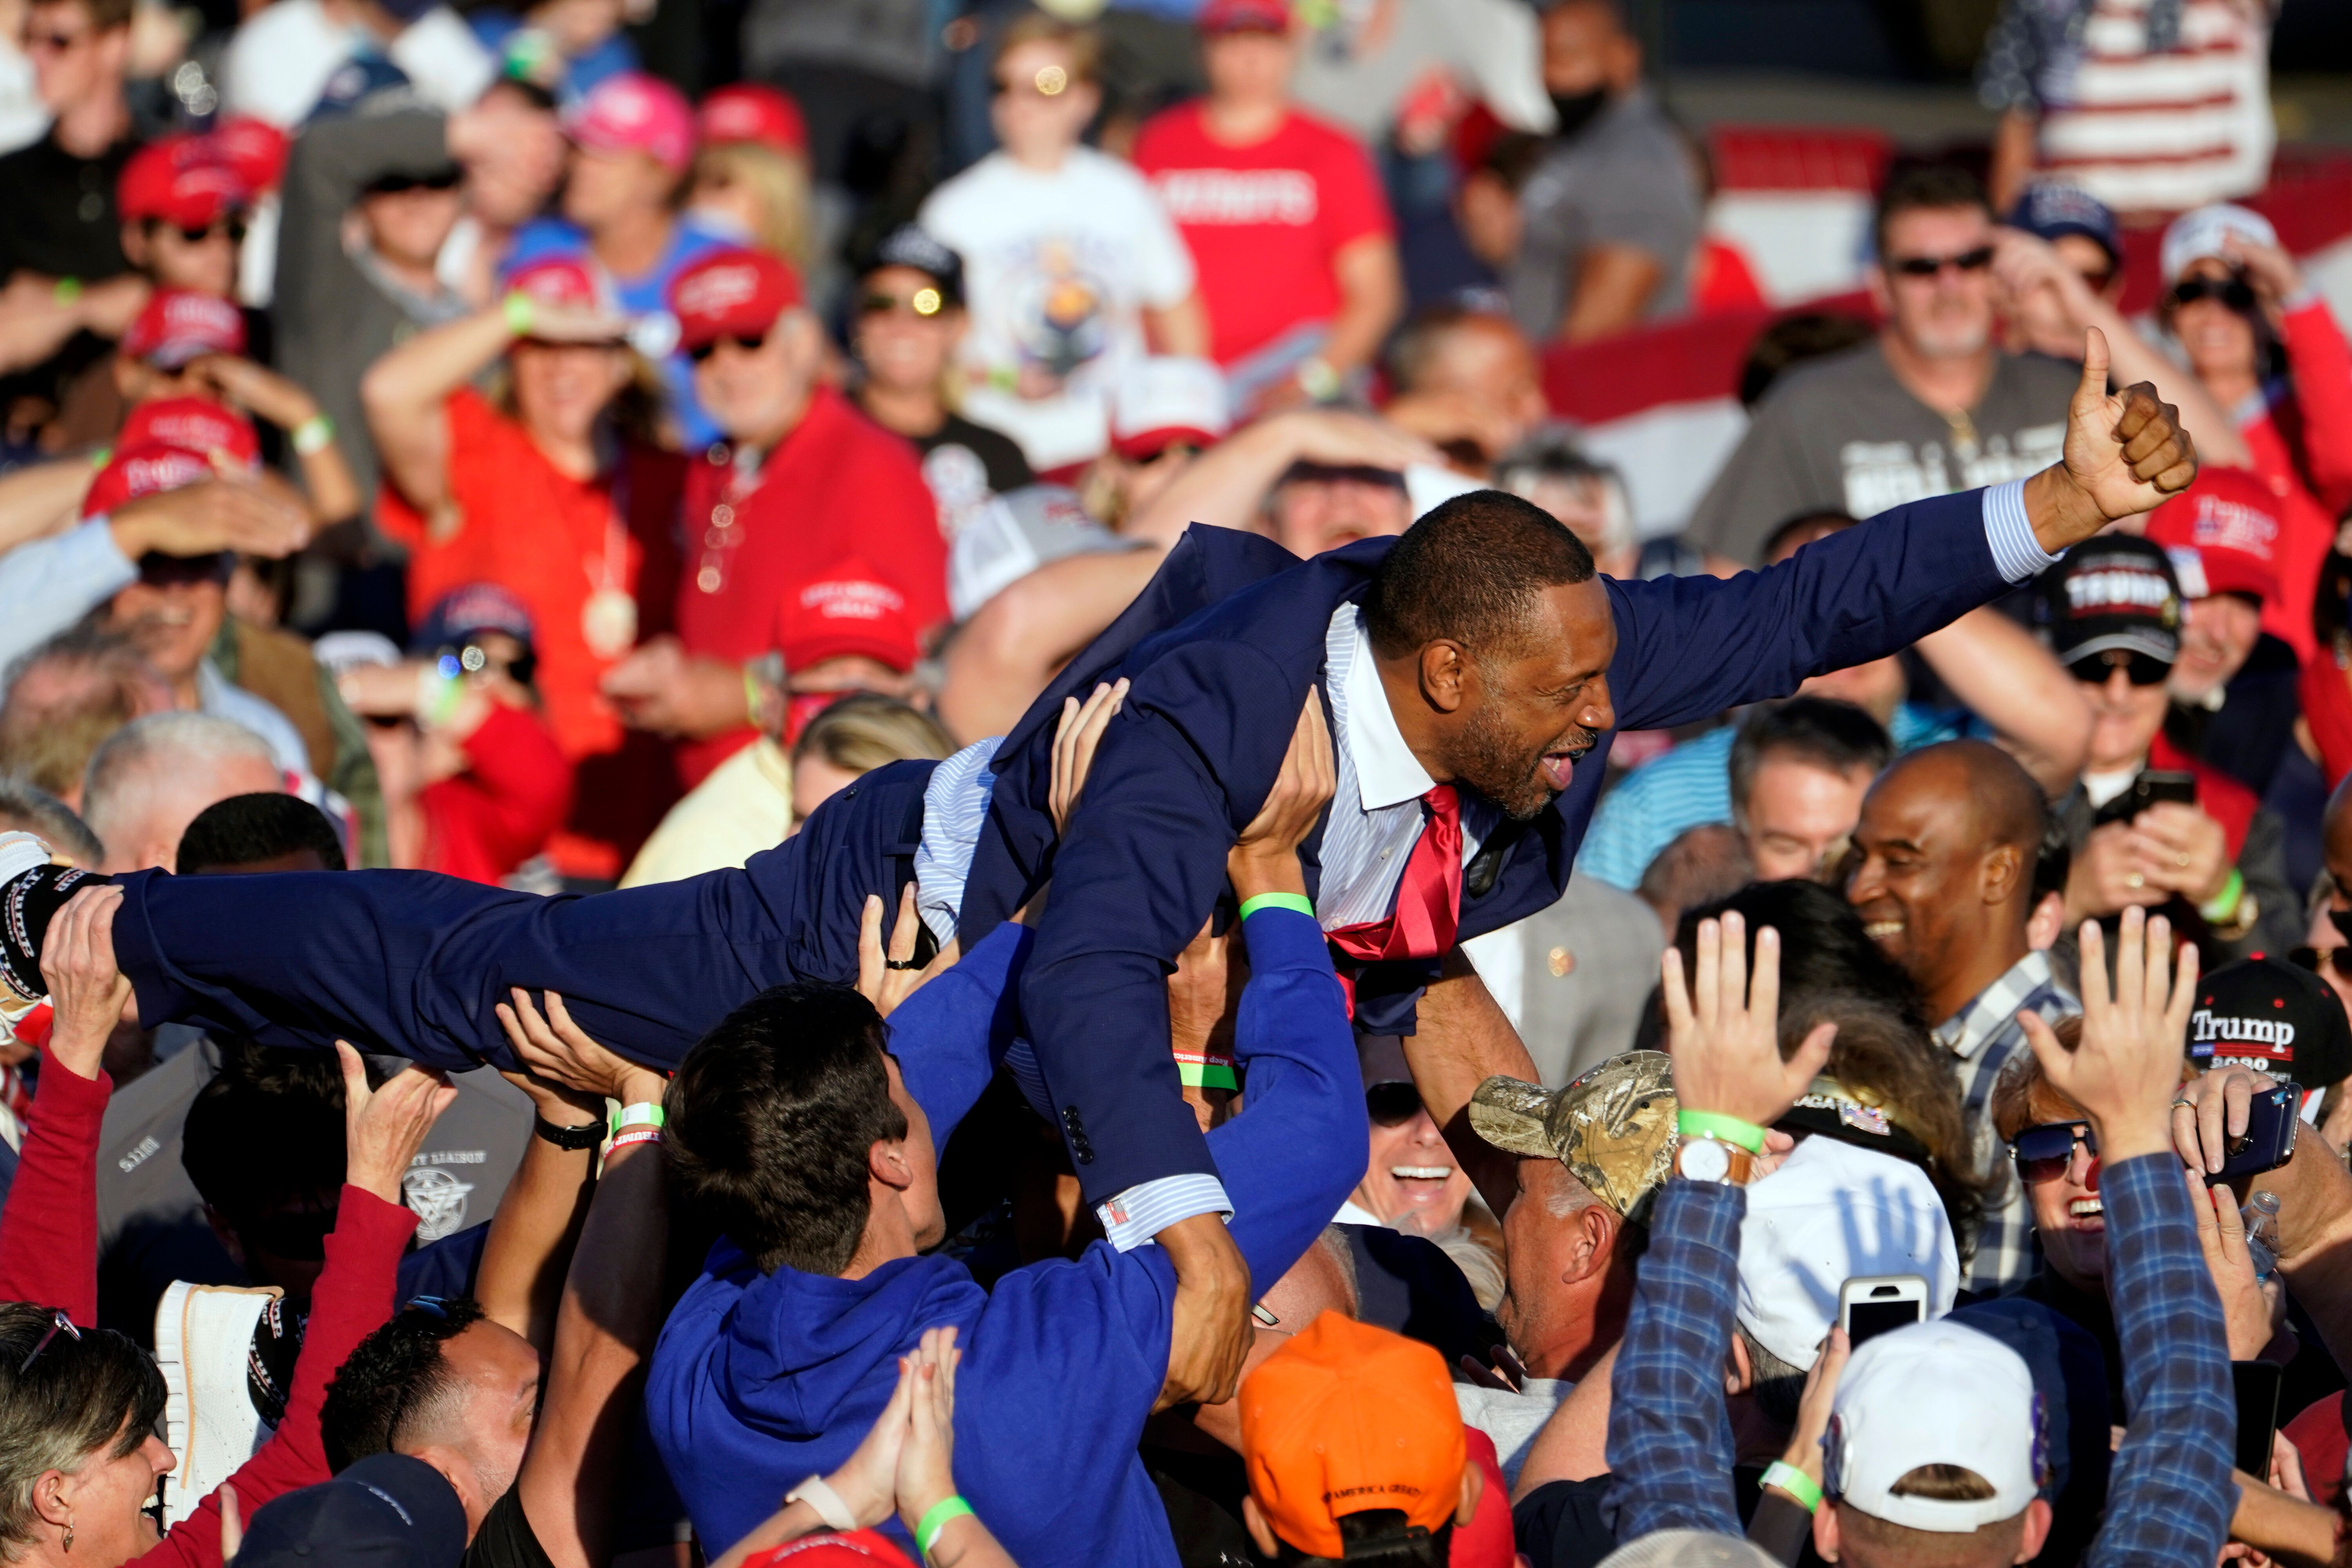 Georgia State Rep. Crowd Surfs Over Maskless Trump Supporters At President's Rally